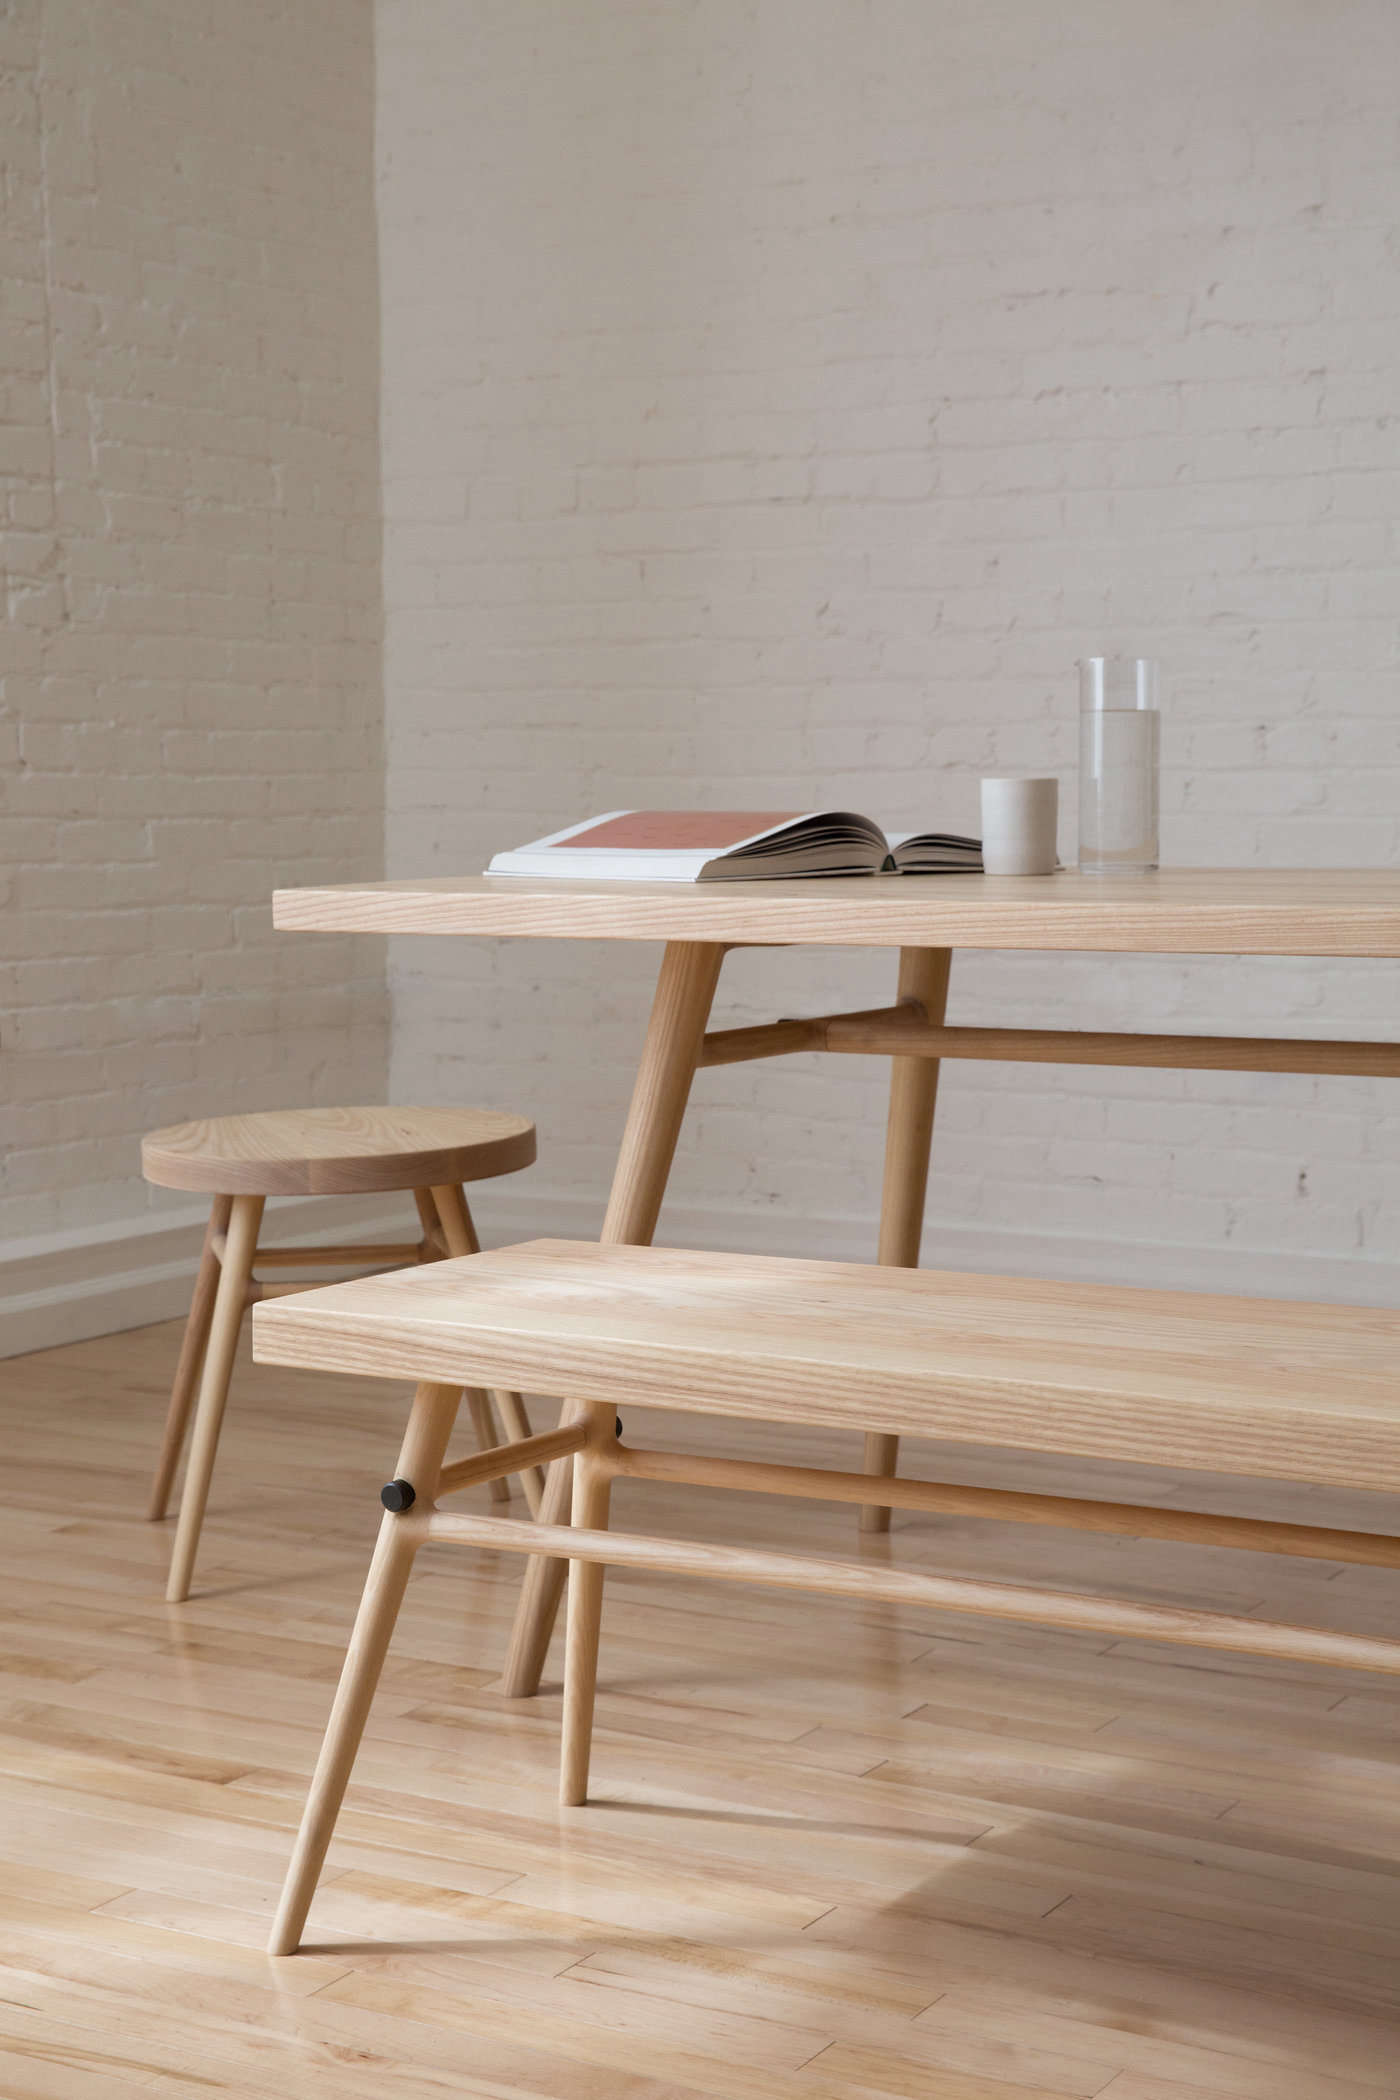 Japanese Inspired Furniture With Before Designing The Collection Simmering And Pauwen First Fell In Love With Materials Slow Designed Sustainble Furniture By Labased Kalon Studios